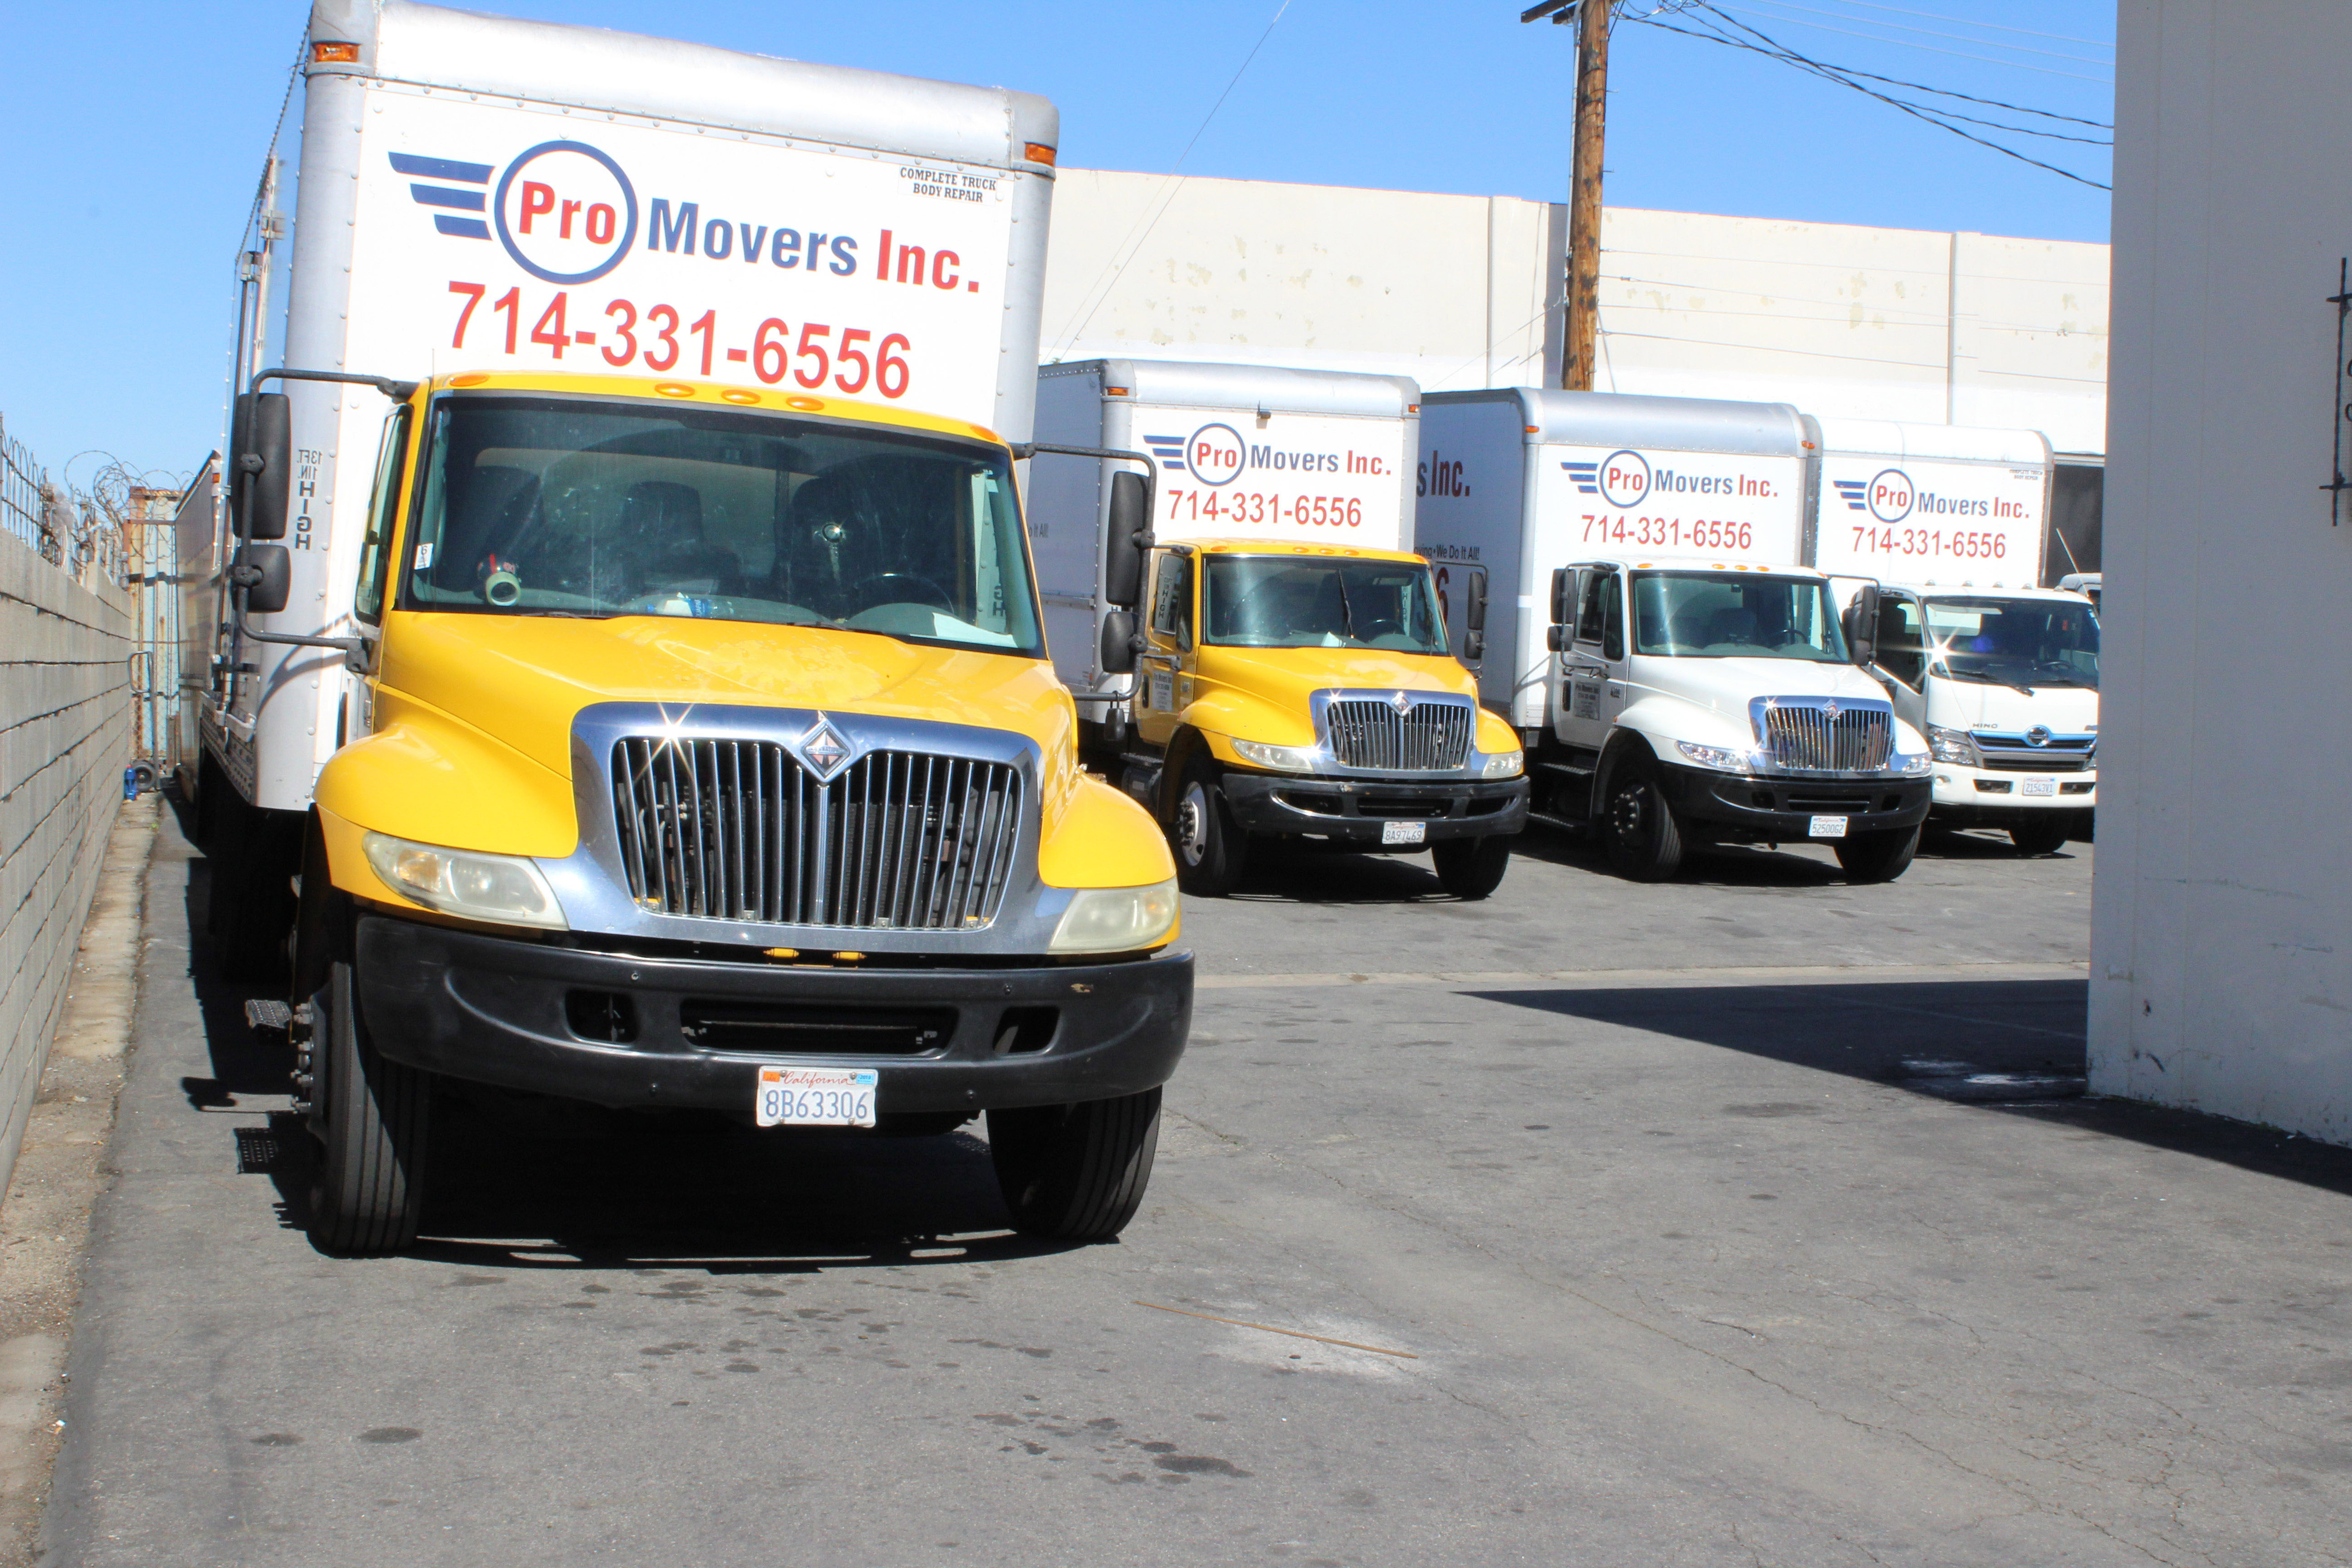 We own twelve trucks to provide you with the best moving experience.